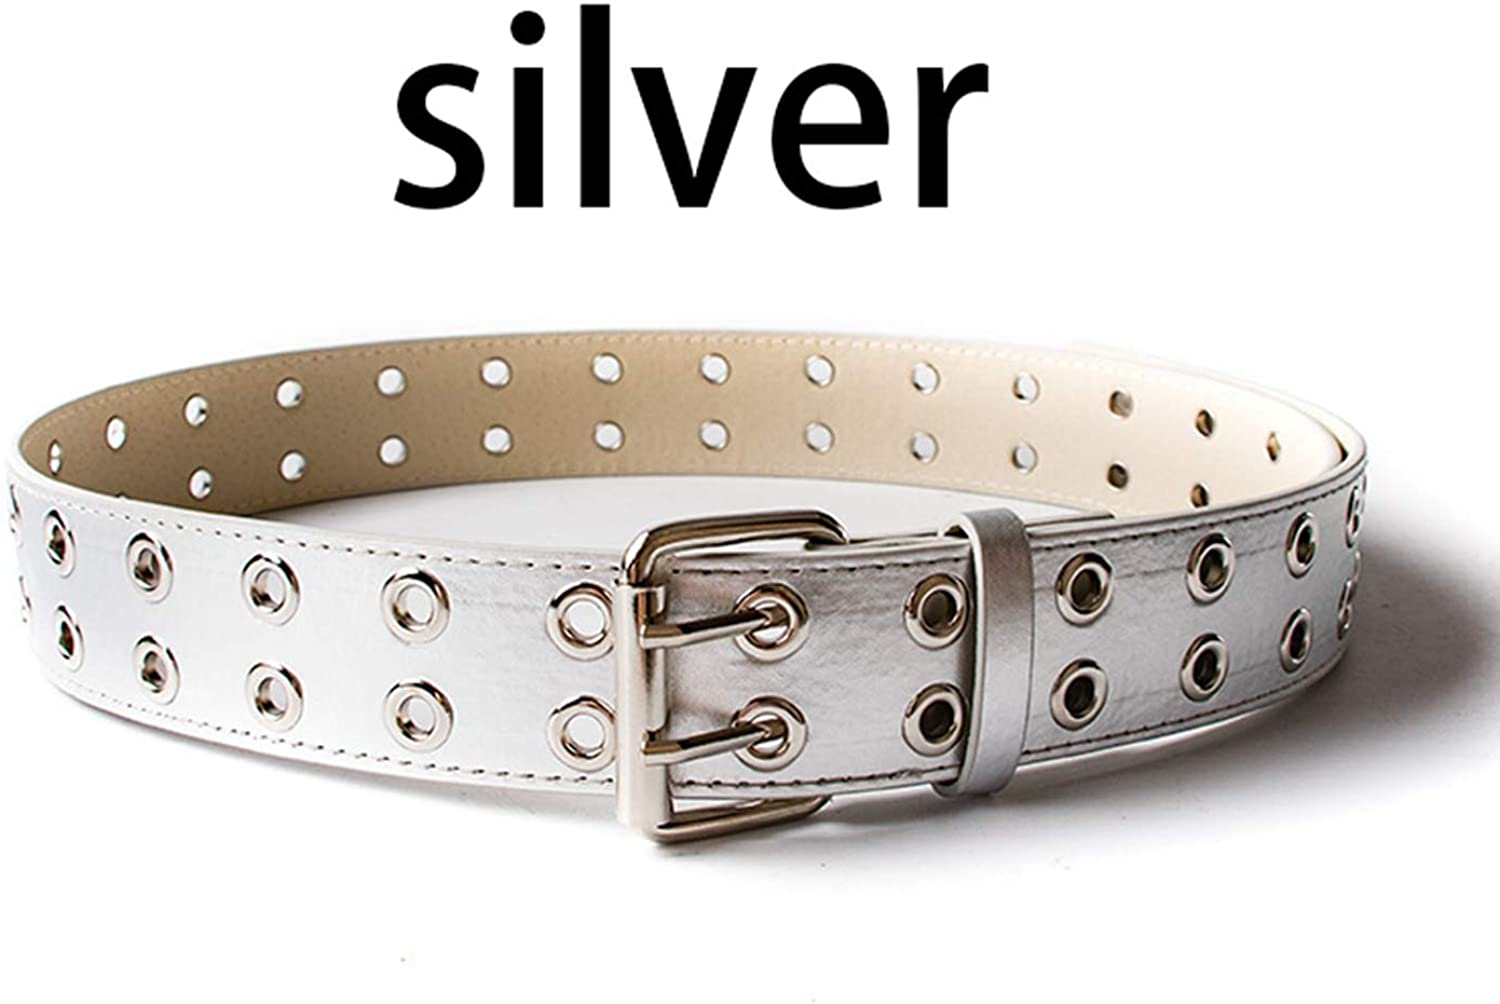 Vintage Rivet Luxury Punk Belts Men Male Rock Motorcycle PU Leather Women Waist Strap For Jeans